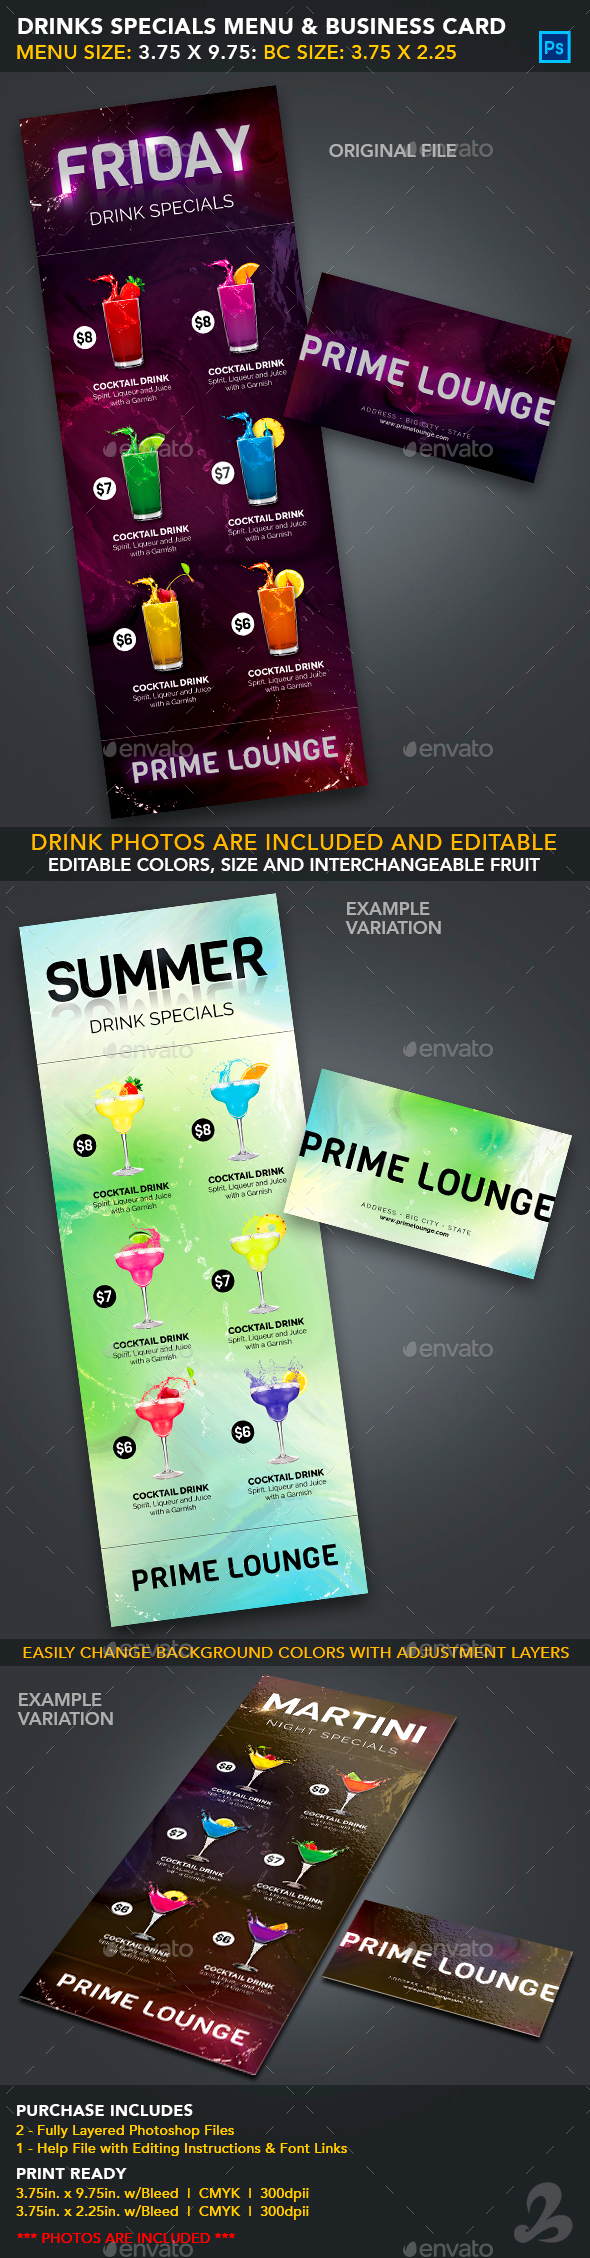 Drink Specials Menu & Business Card Template 1 by CreativB ...